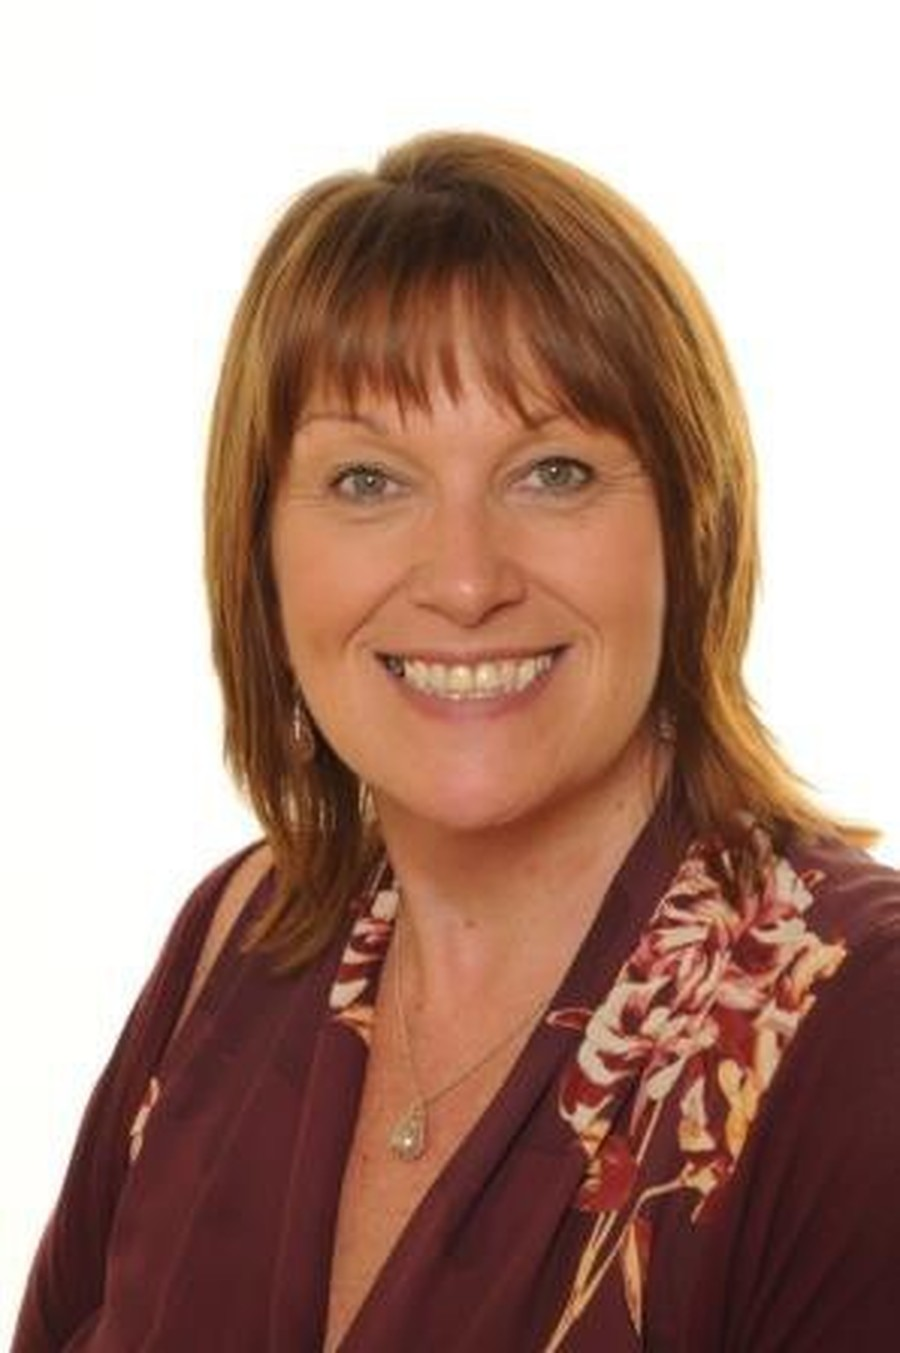 Mrs Linda Laird, Headteacher and Designated Safeguarding Lead